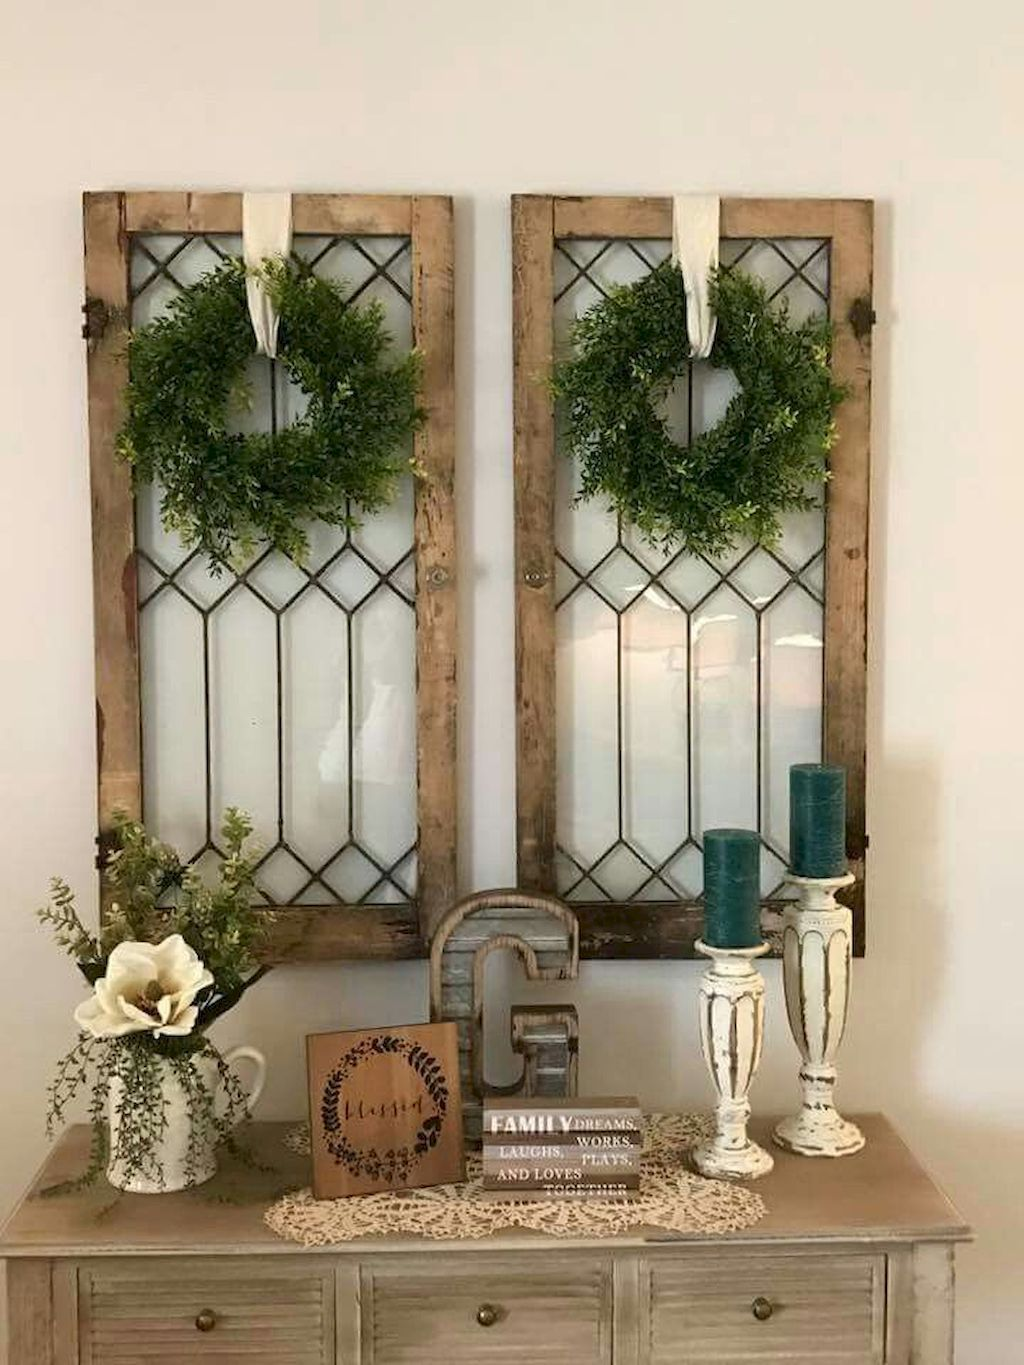 Stunning Farmhouse Entryway Decorating Ideas 14 Farmhouse Decor